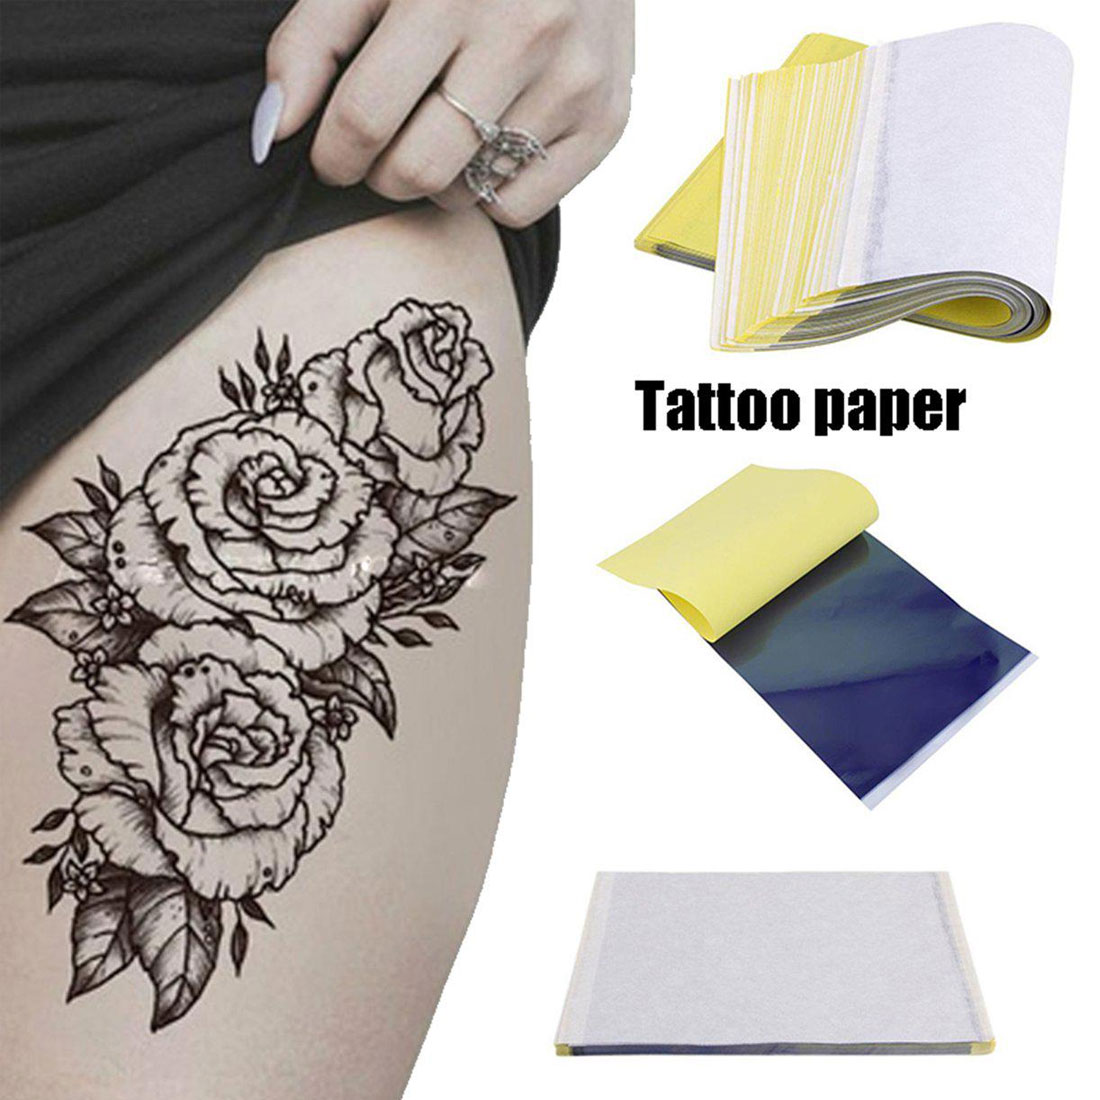 5Pcs/Lot 4 Layer Carbon Thermal Stencil Tattoo Transfer Paper Copy Paper Tracing Paper Professional Tattoo Body Tattoo Stickers